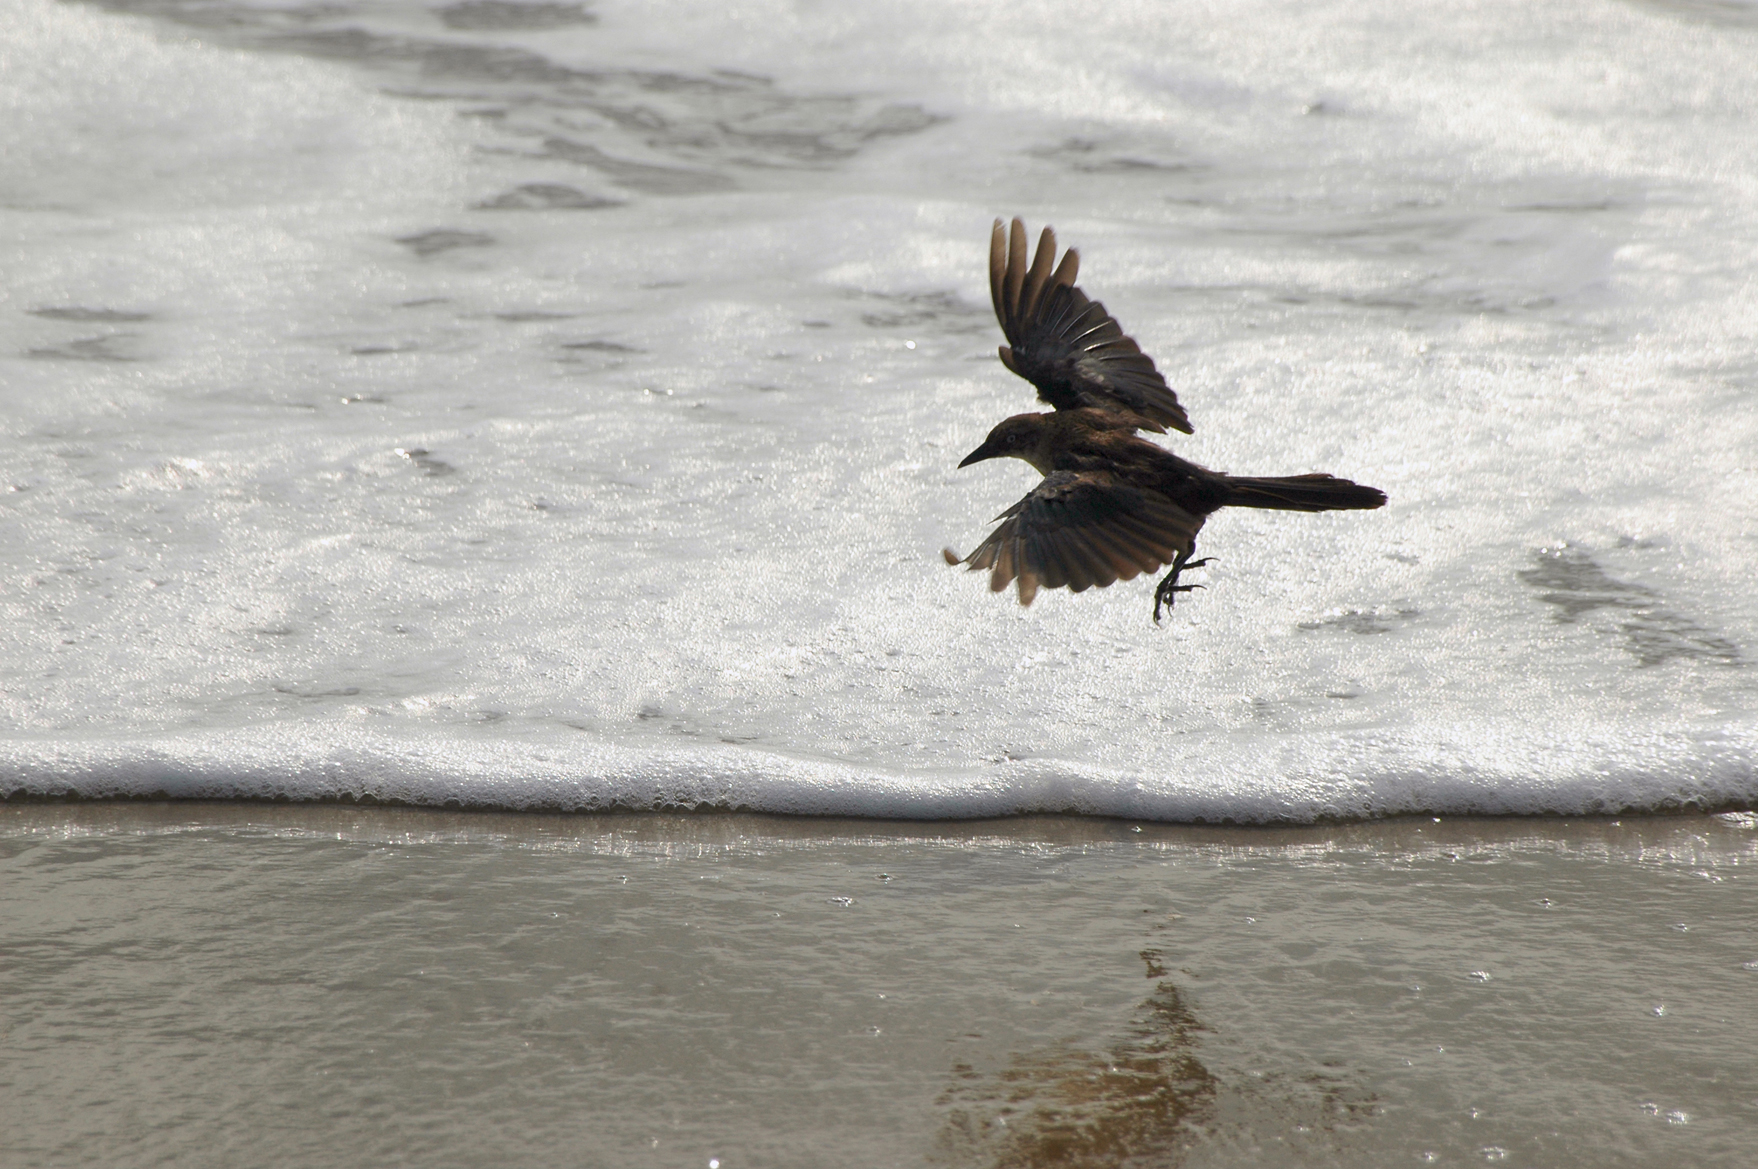 Black Bird at the Shoreline